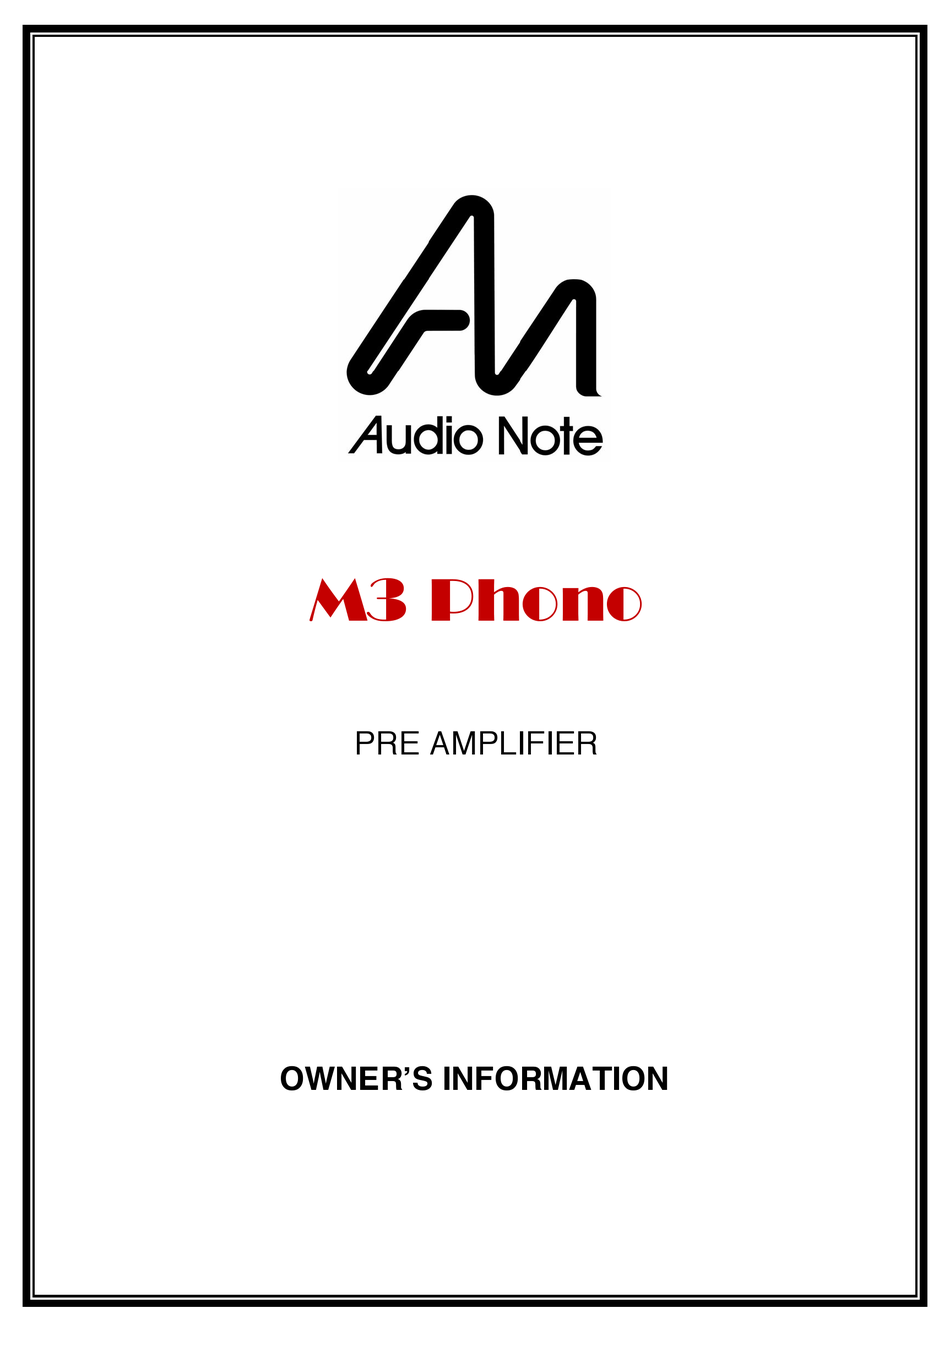 AUDIO NOTE M3 PHONO OWNER'S INFORMATION Pdf Download